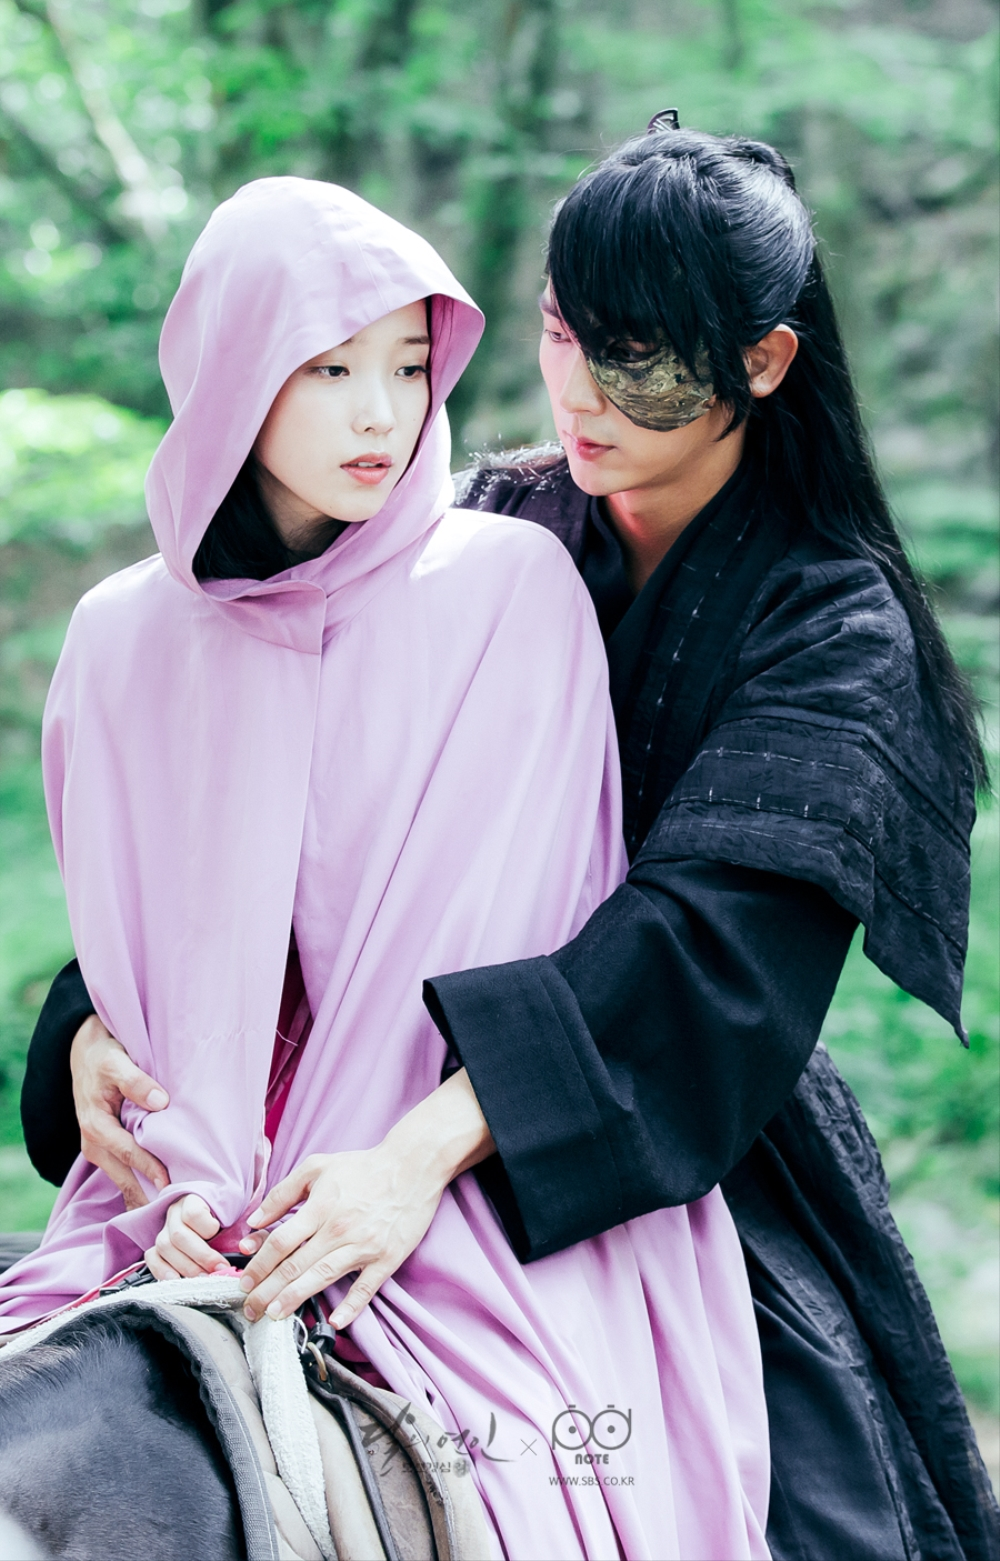 Subtle physical contact of the hand writing a sea of pink and tan cloak wangso say